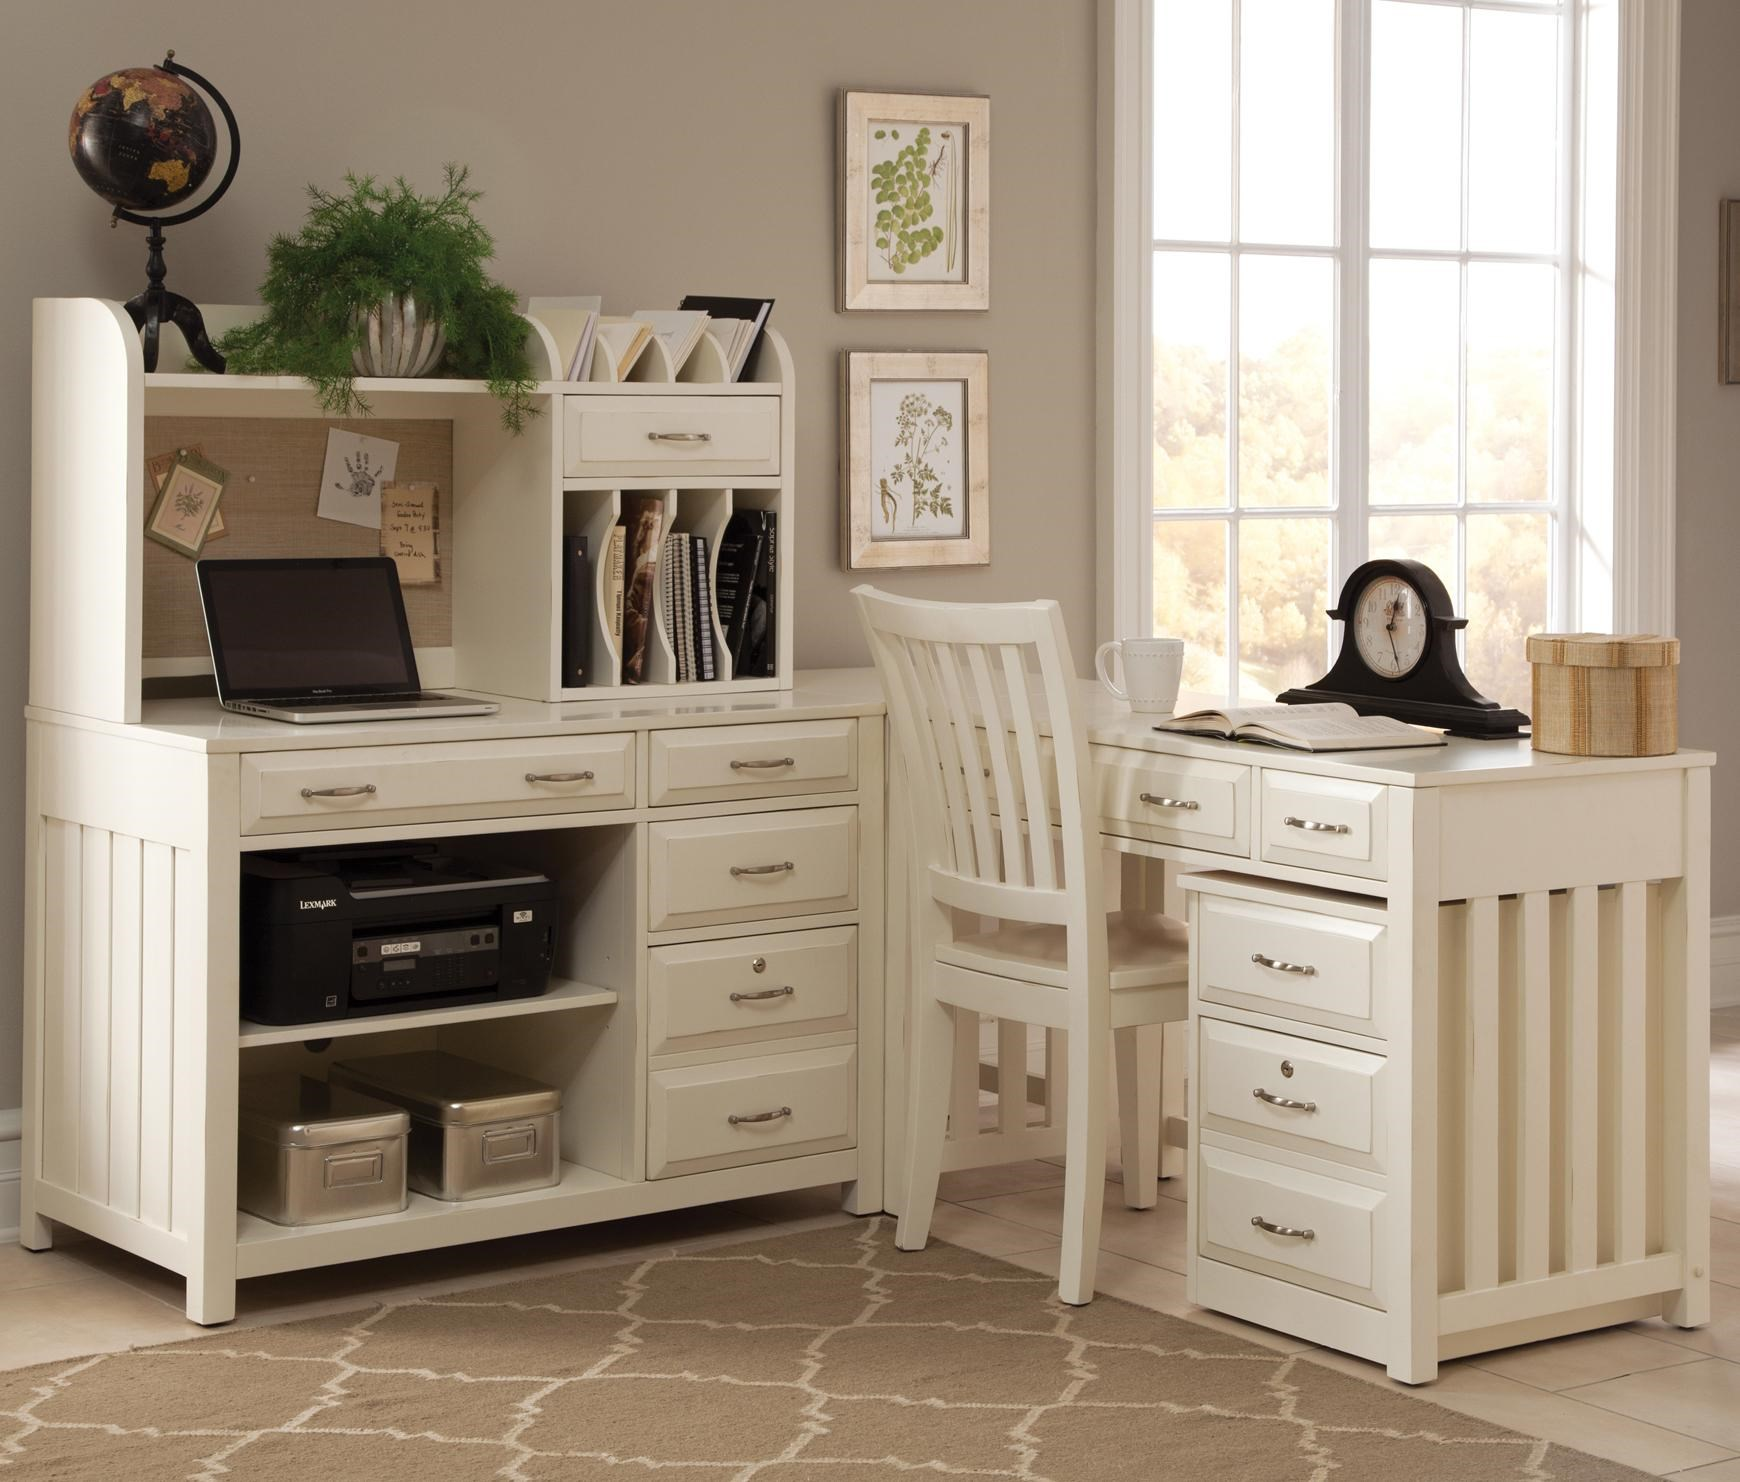 Incroyable Liberty Furniture Hampton Bay   White 5 PC L Shaped Desk And File CHAIR  SOLD SEPERATE